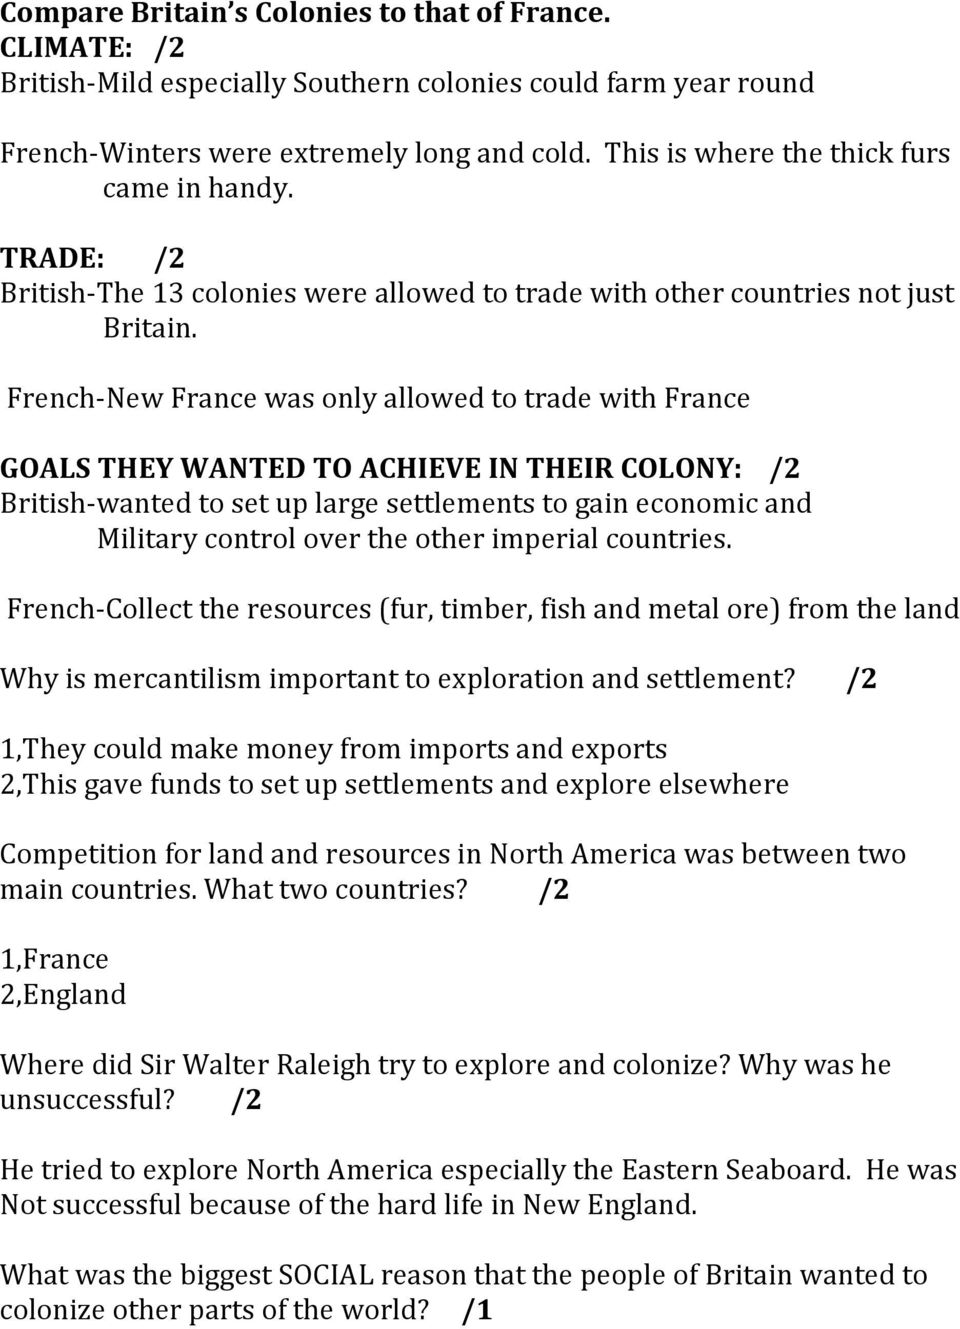 French- New France was only allowed to trade with France GOALS THEY WANTED TO ACHIEVE IN THEIR COLONY: /2 British- wanted to set up large settlements to gain economic and Military control over the